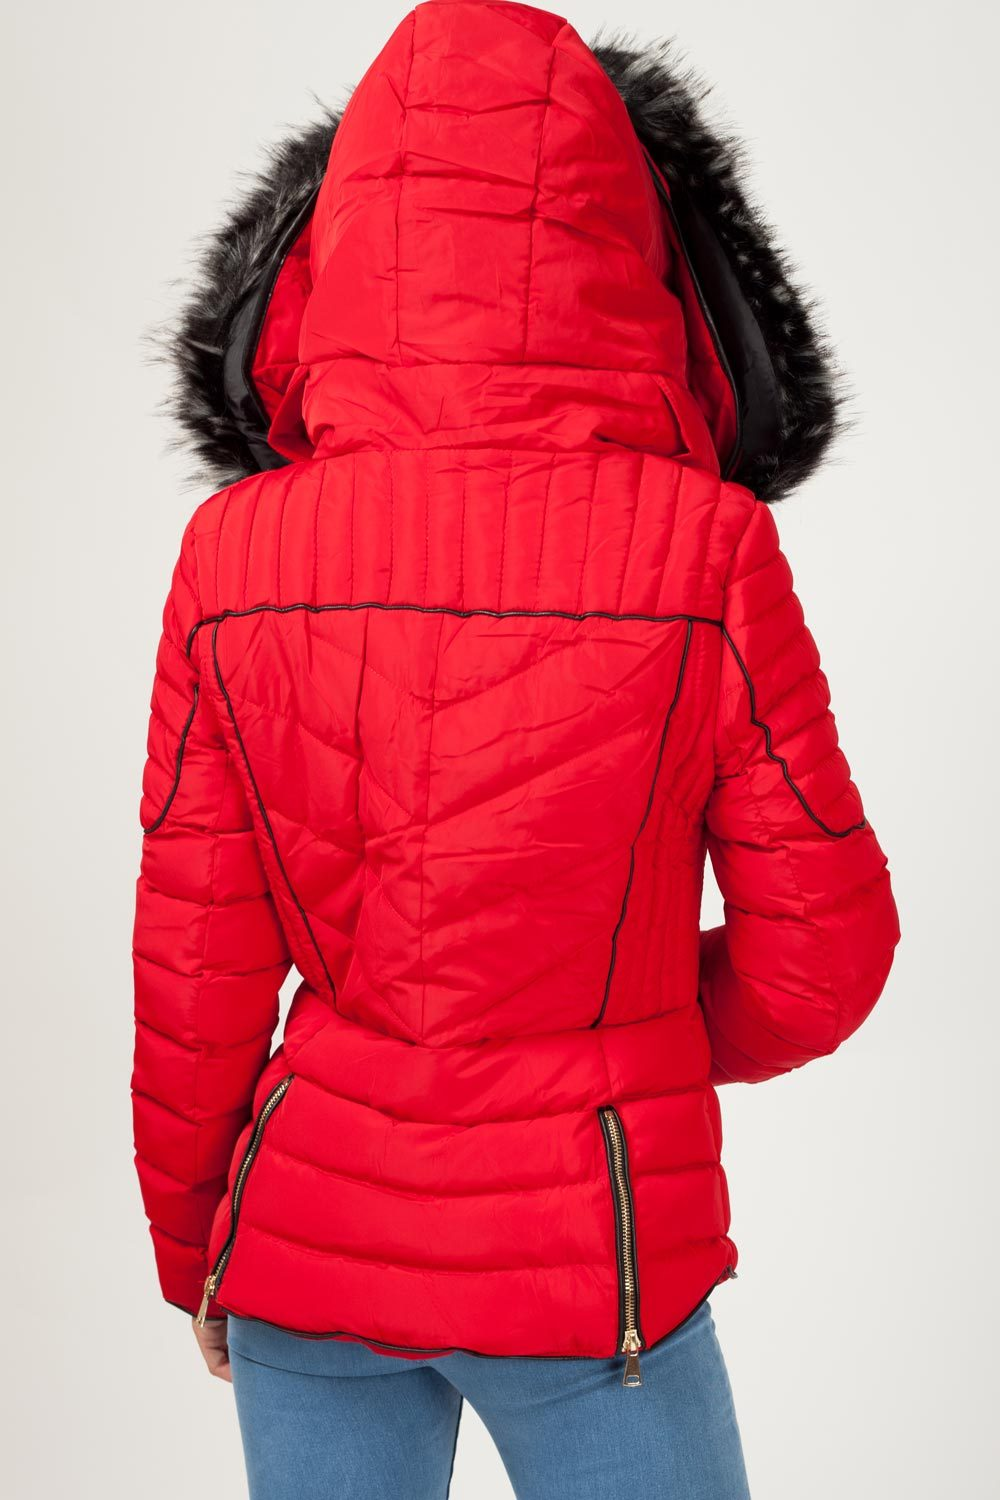 womens red puffer quilted coat uk